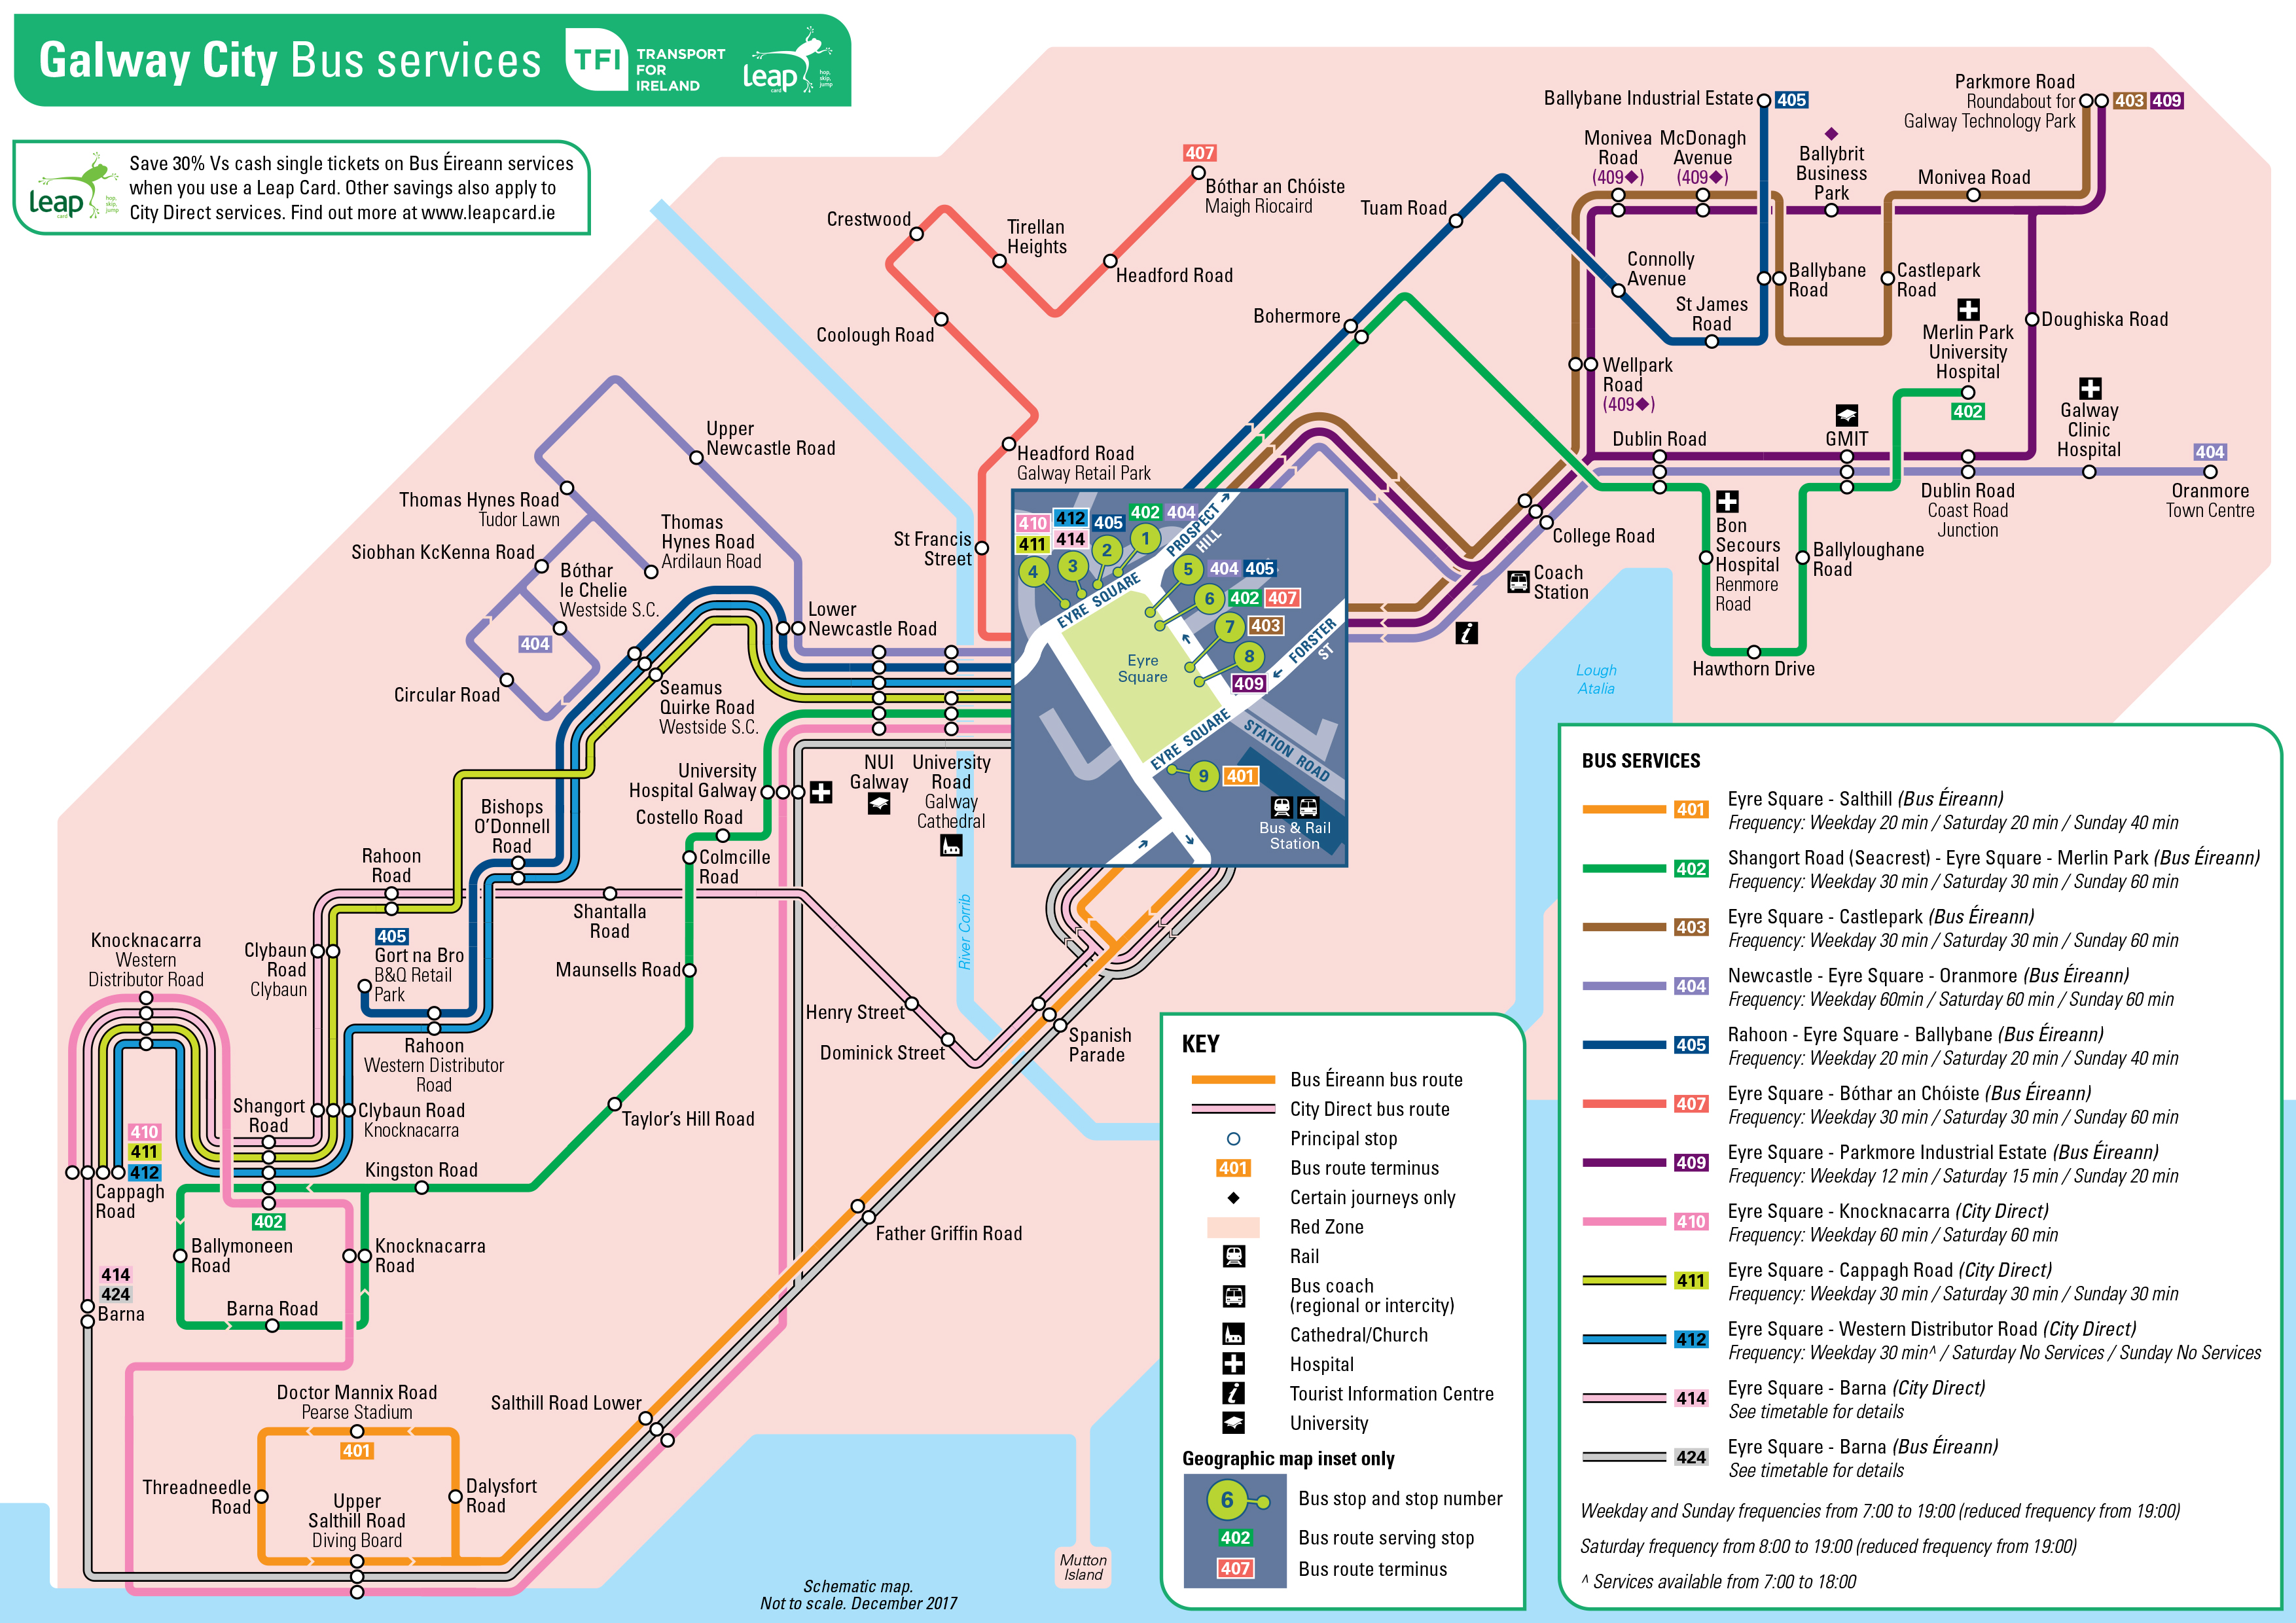 Train Travel In Ireland Map.Transport For Ireland Maps Of Public Transport Services